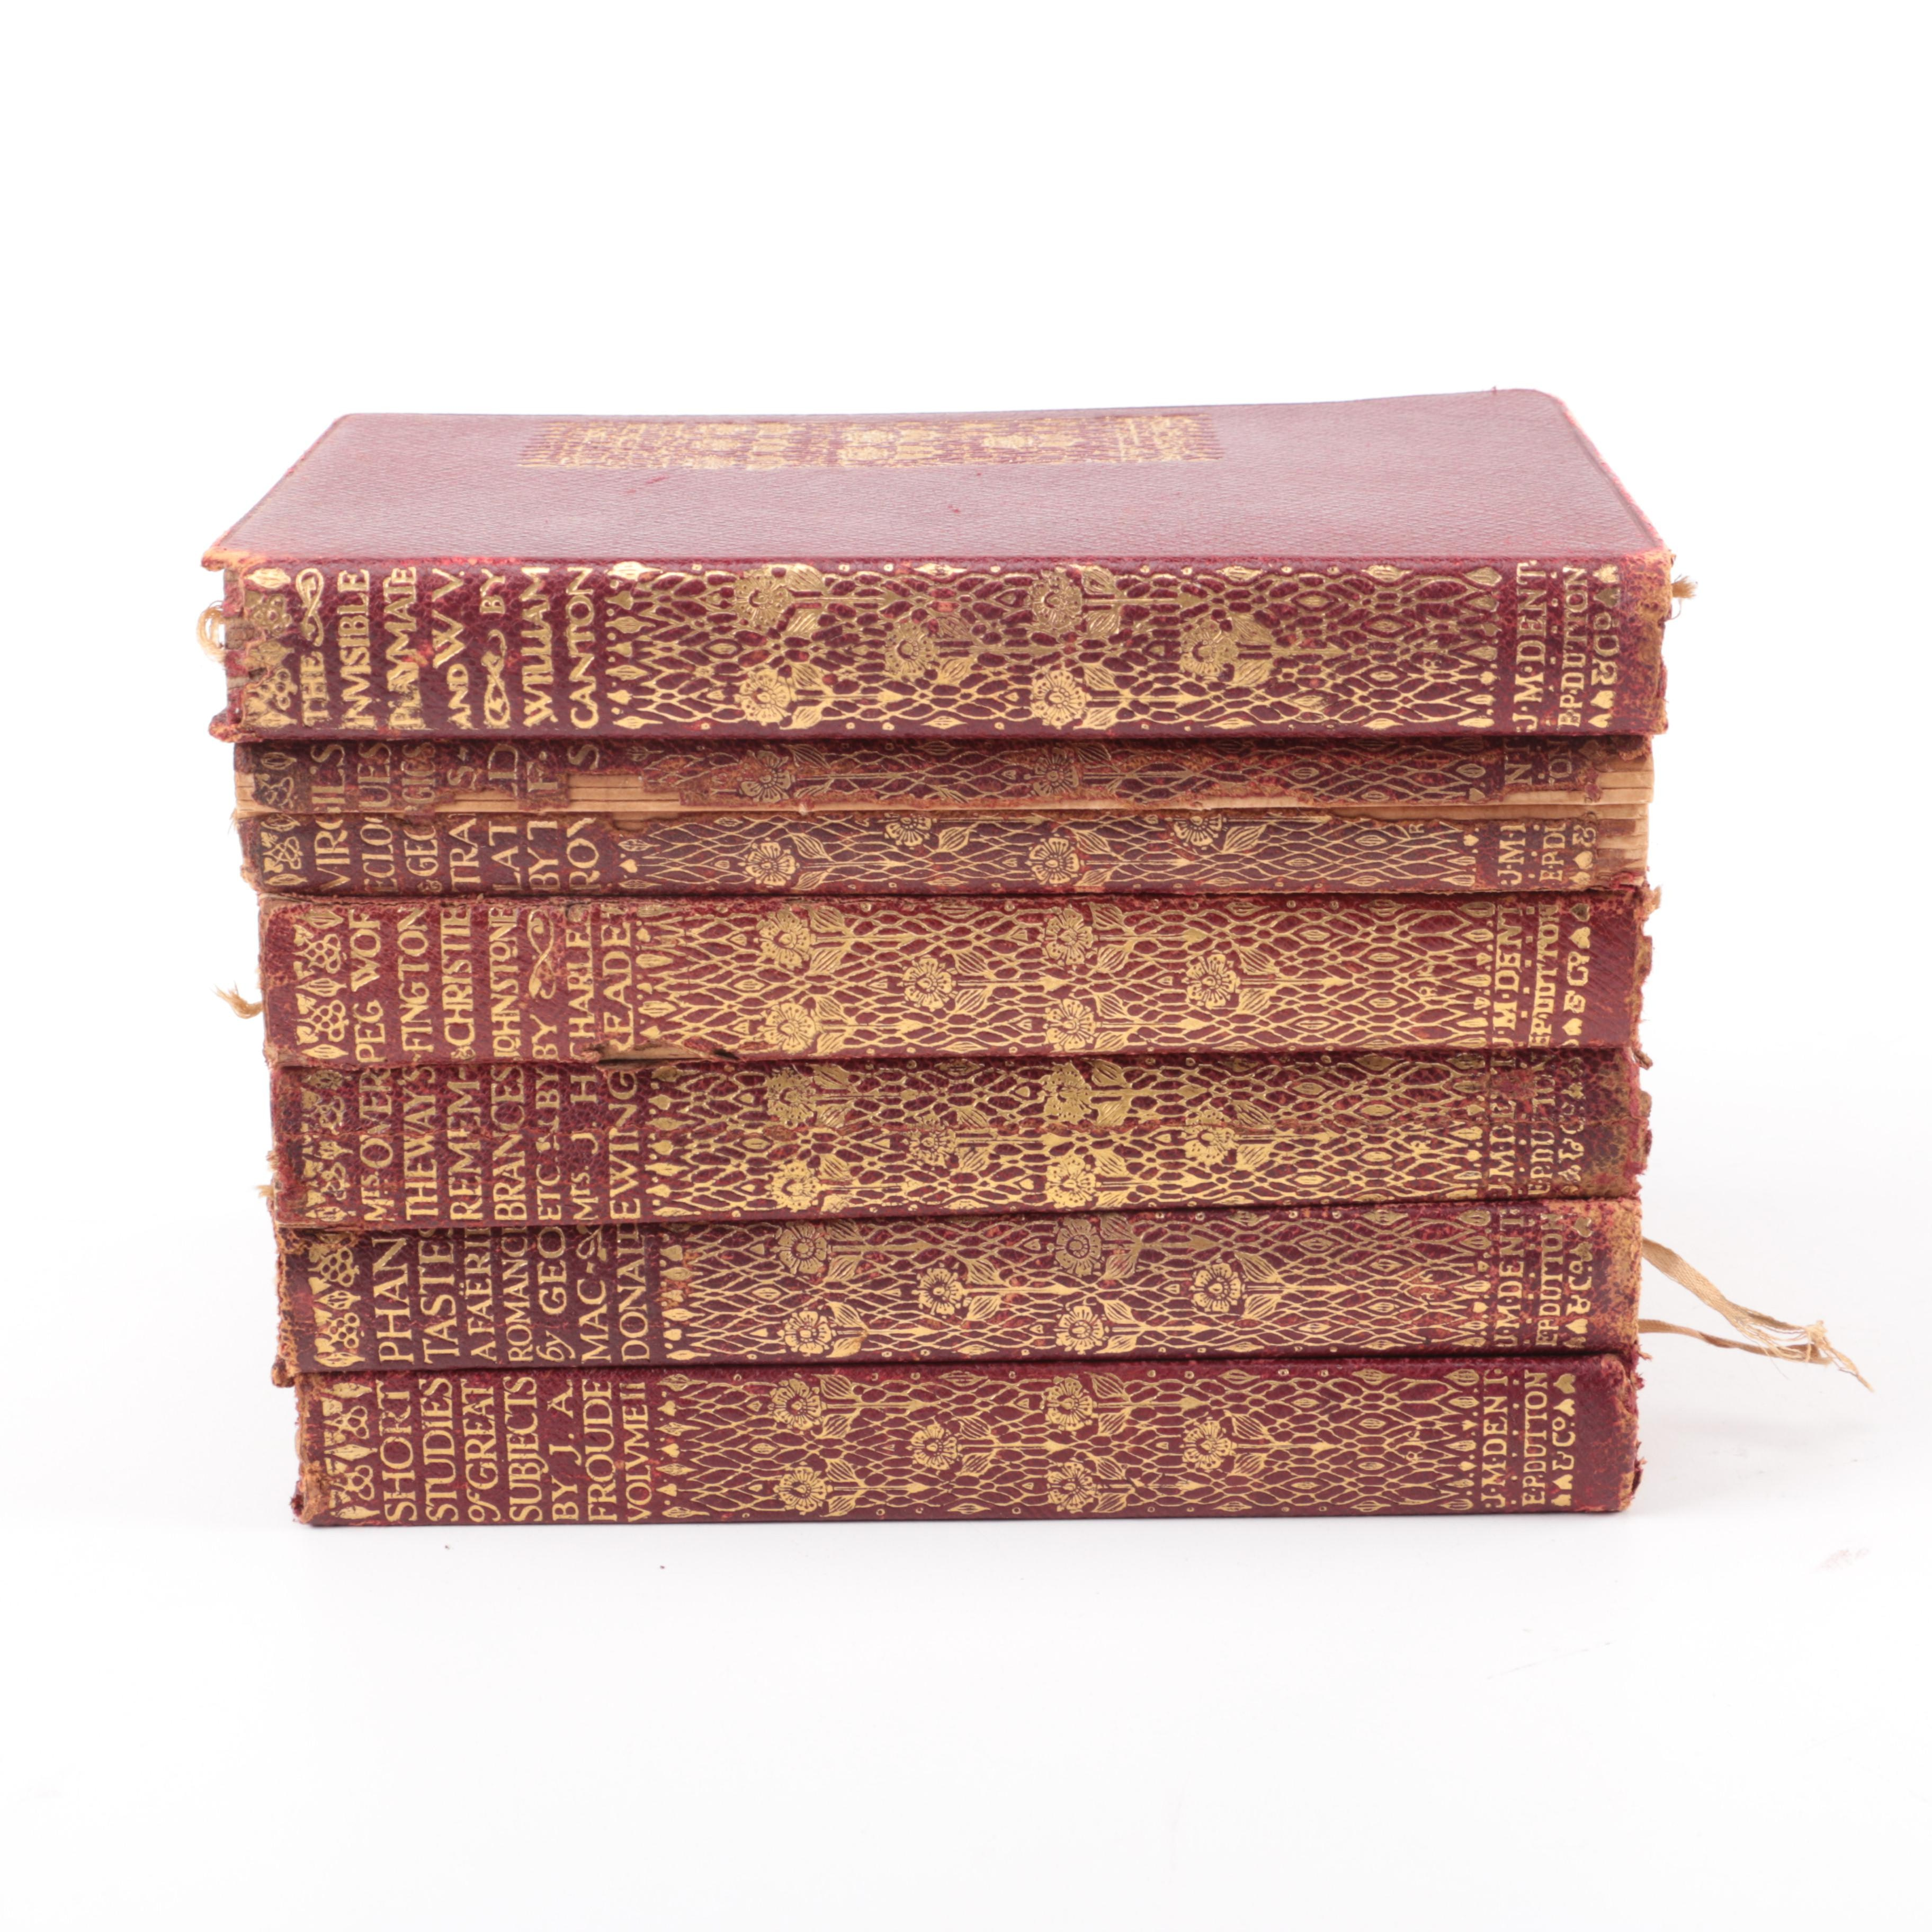 Early Twentieth Century Collection of Everyman's Library Leather Bound Books